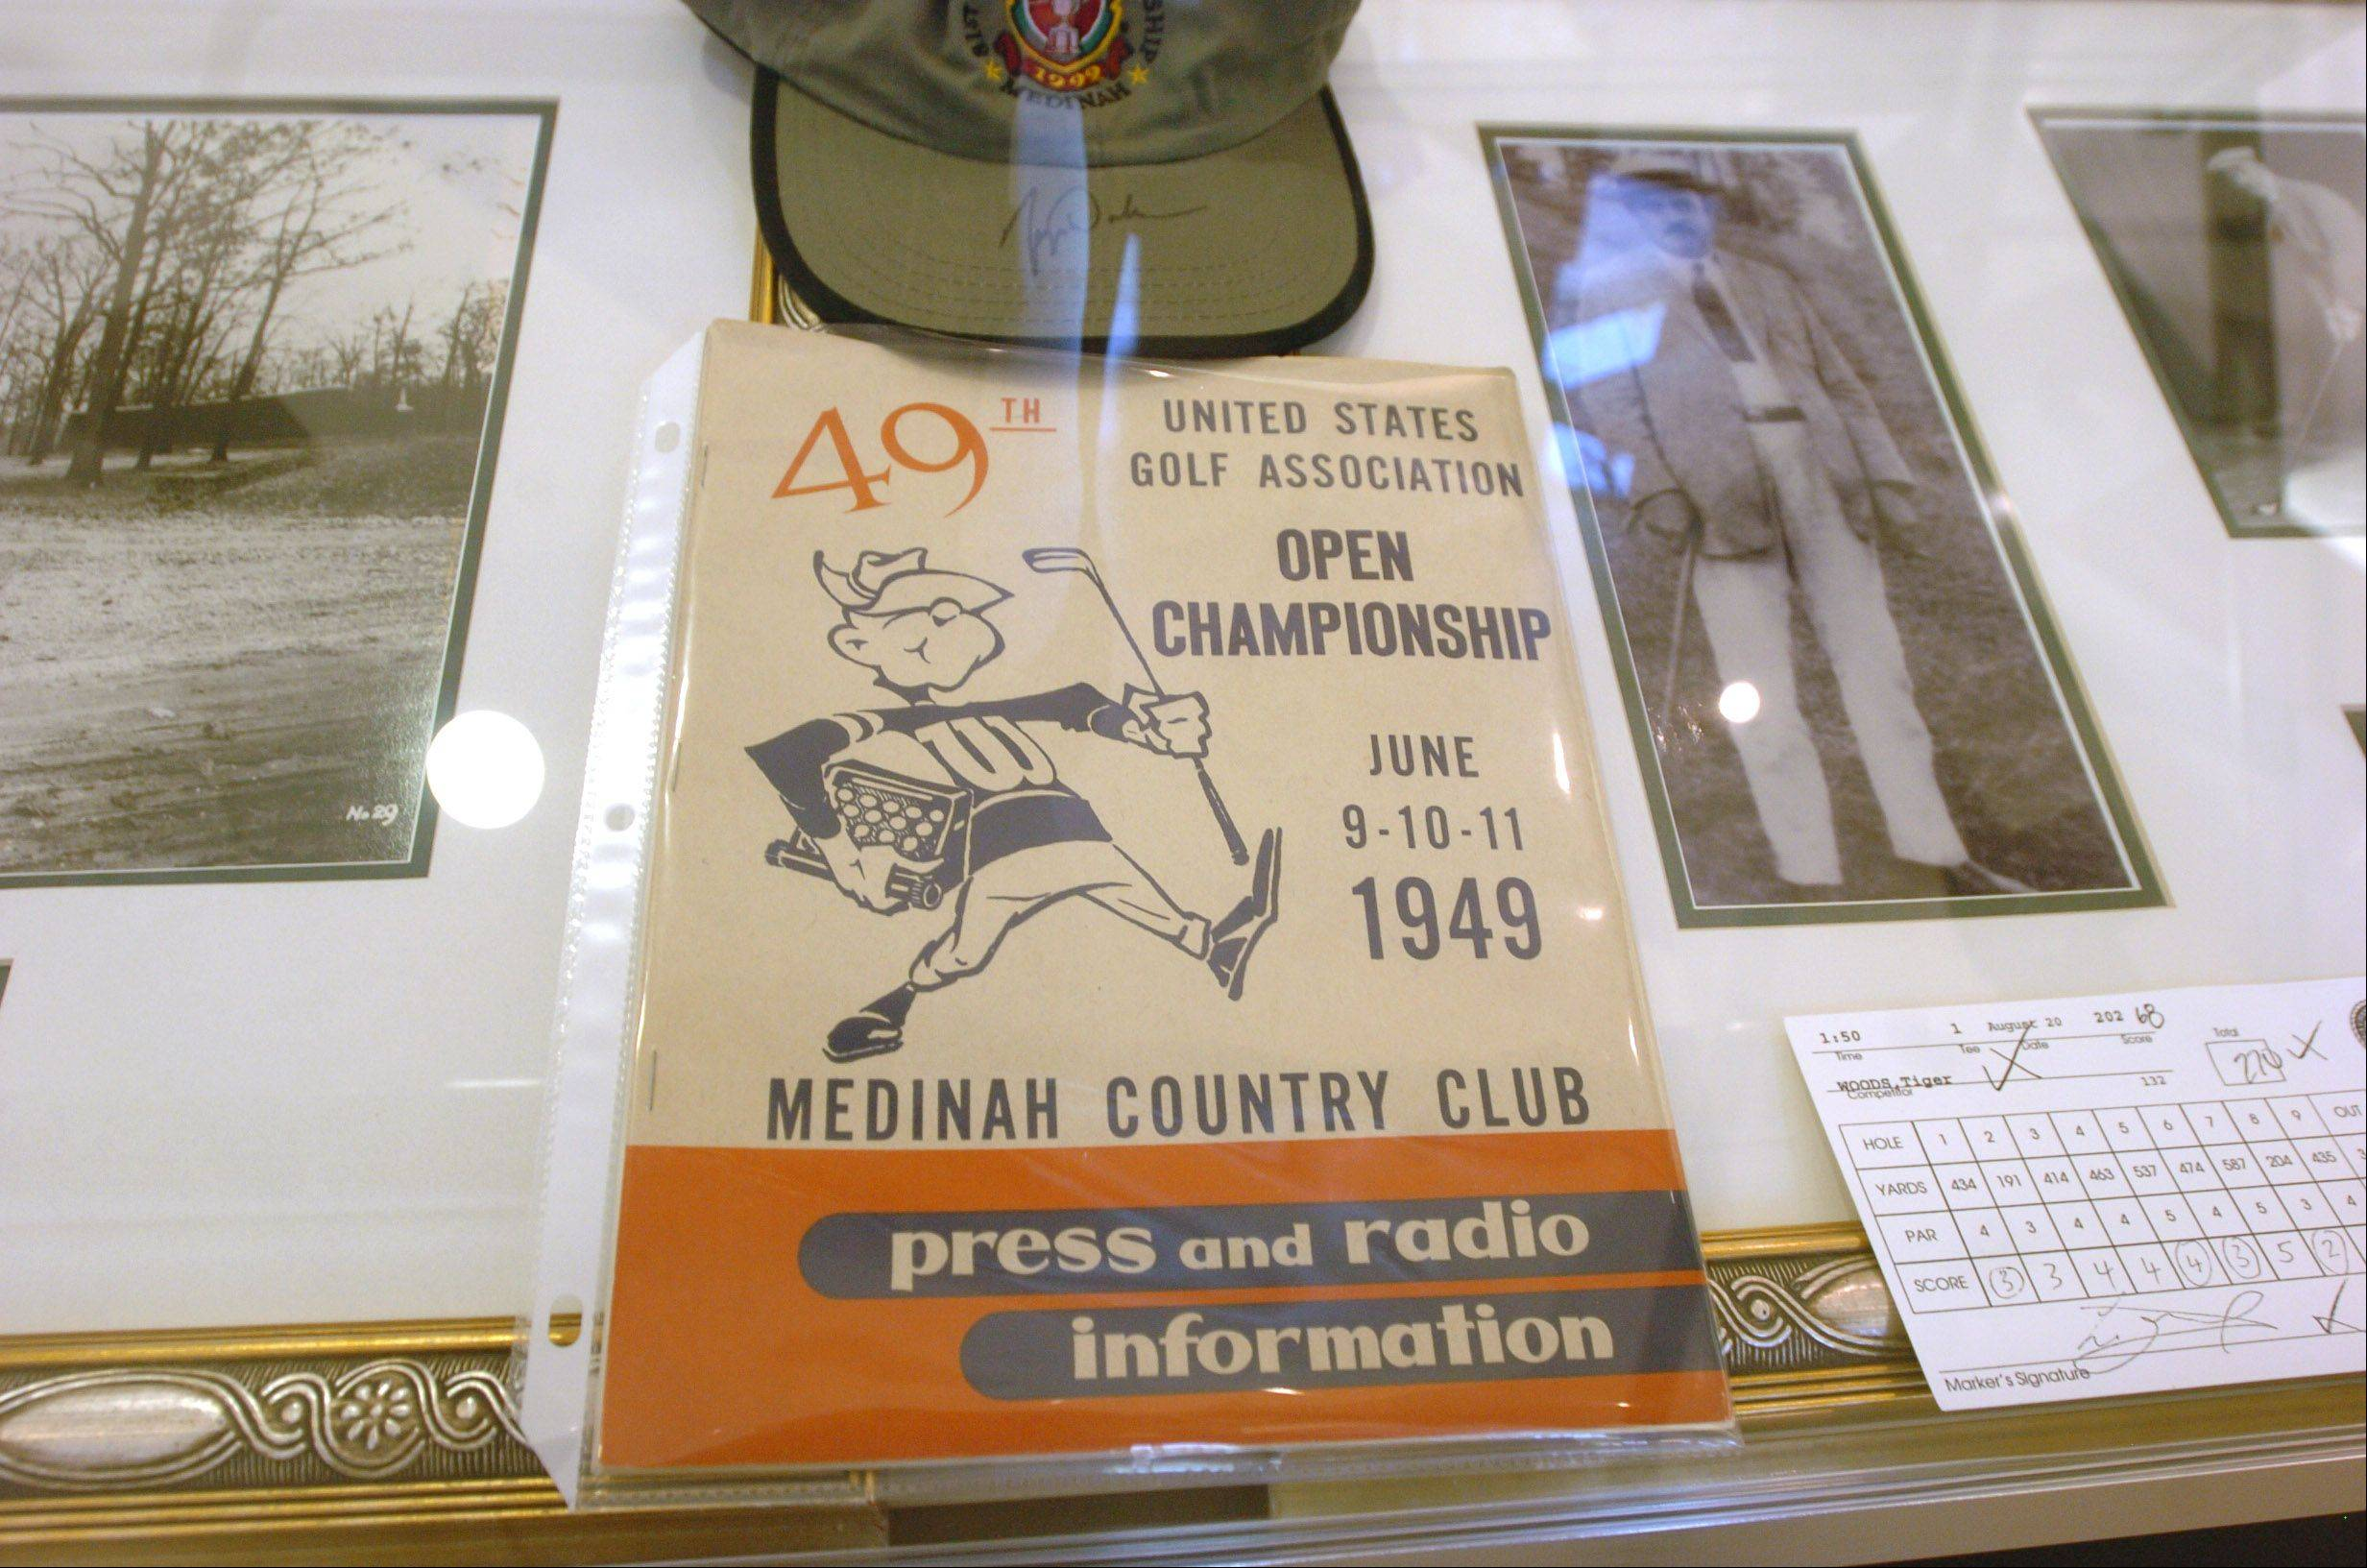 This Medinah Country Club program from 1949 is among vintage golf items on display,